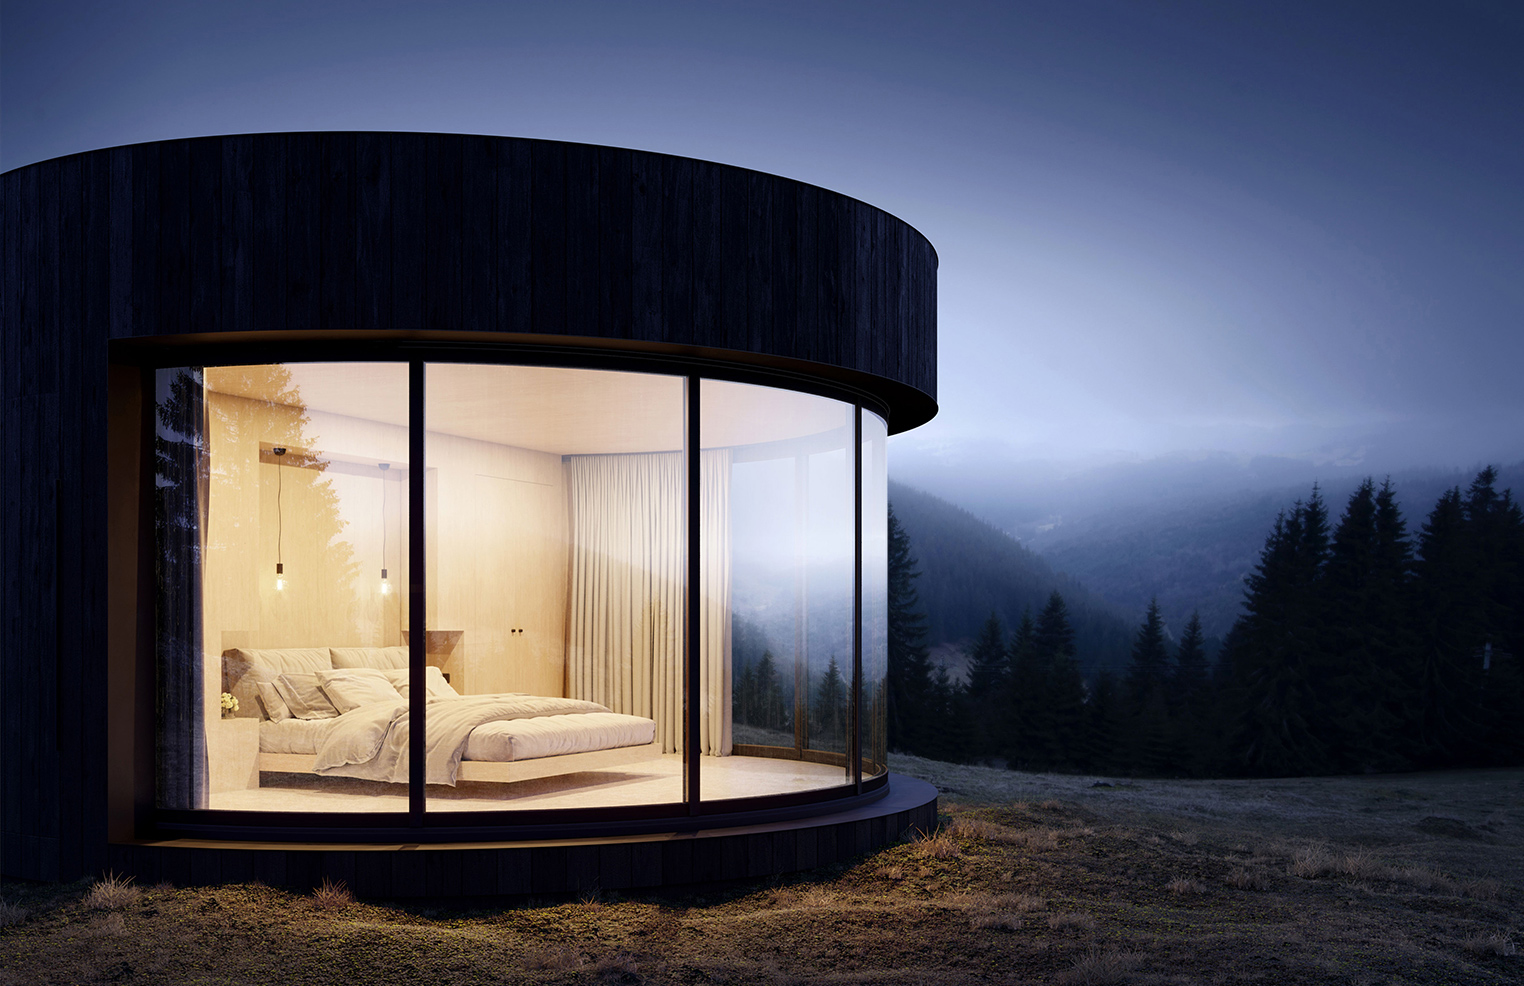 This round cabin opens straight onto the landscape